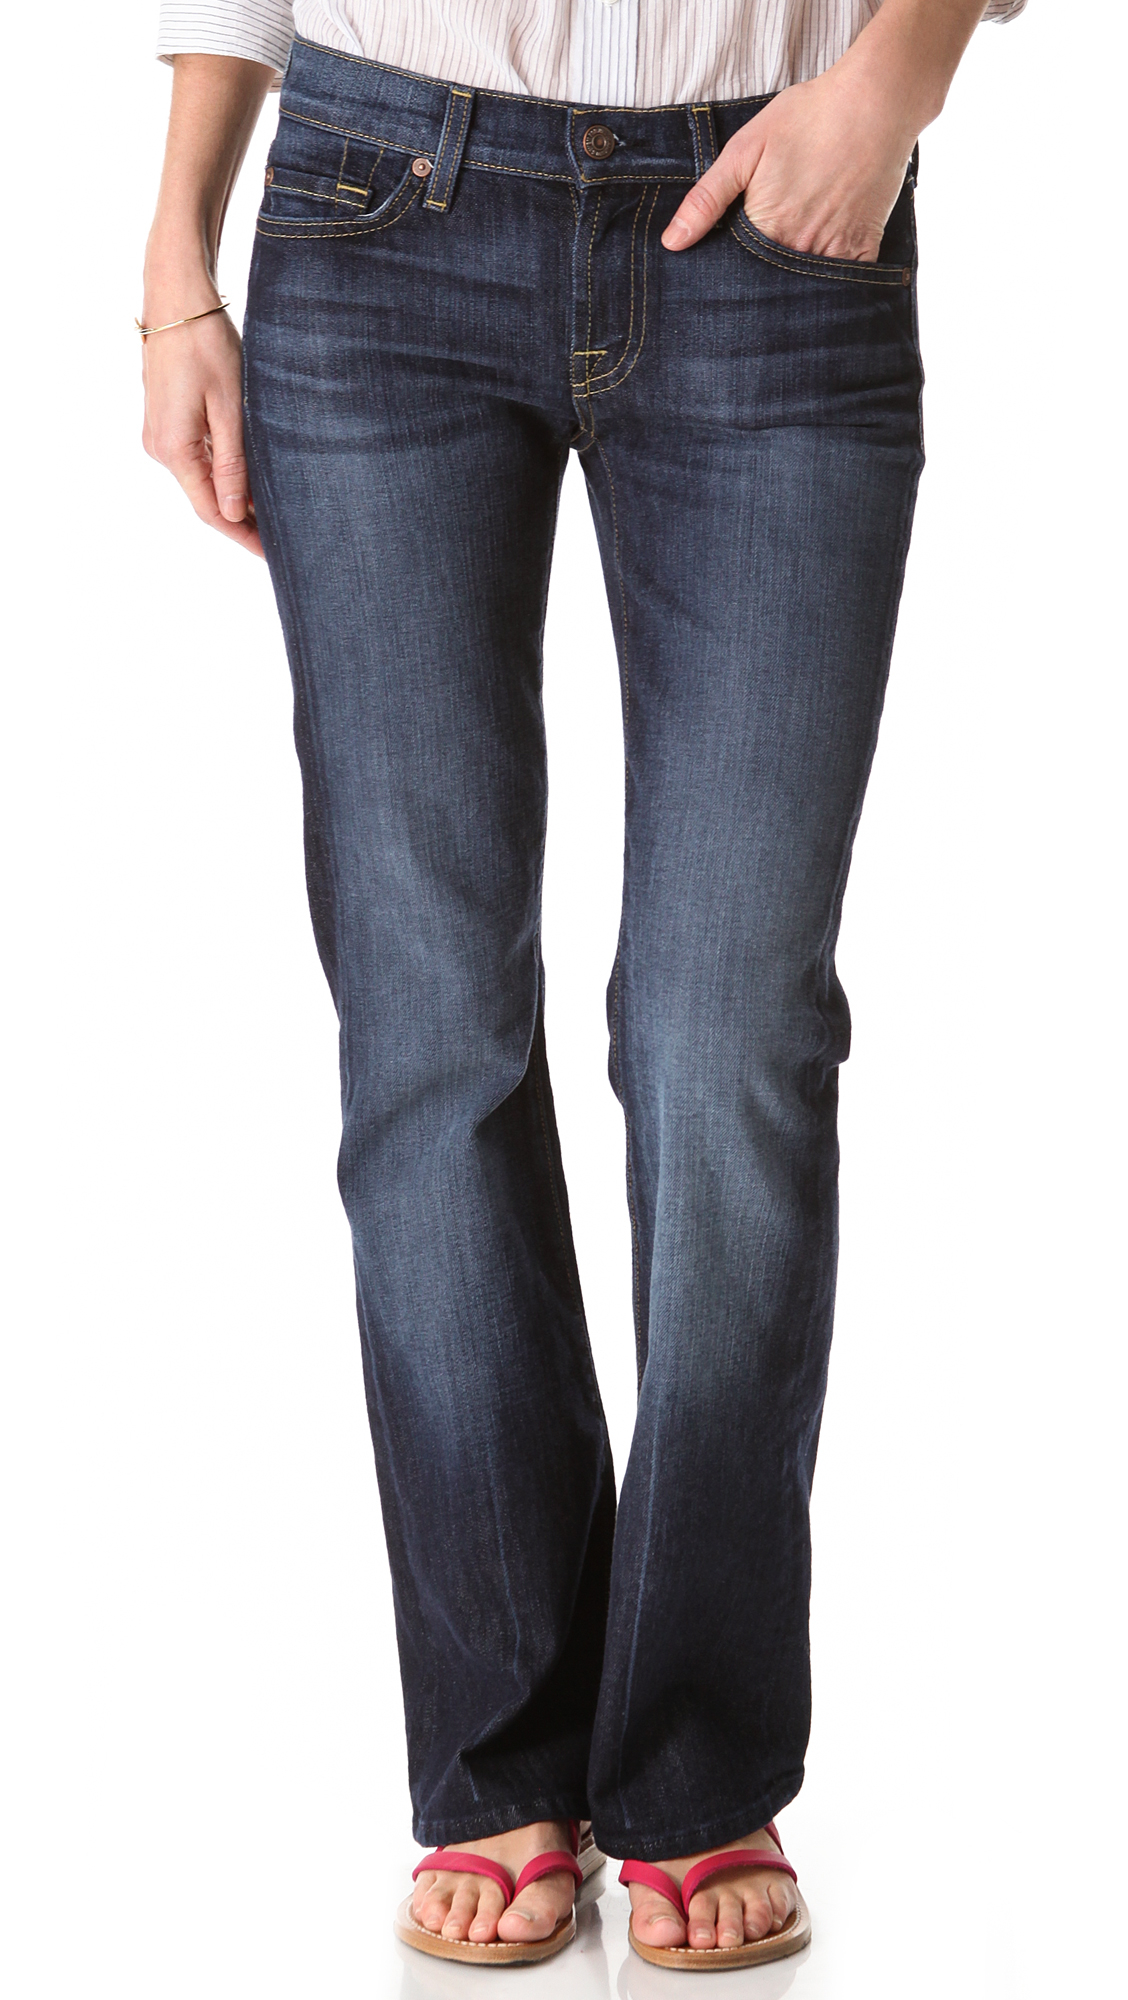 4bf3746d791ae Lyst - 7 For All Mankind Petite Boot Cut Jeans - Nouveau New York ...